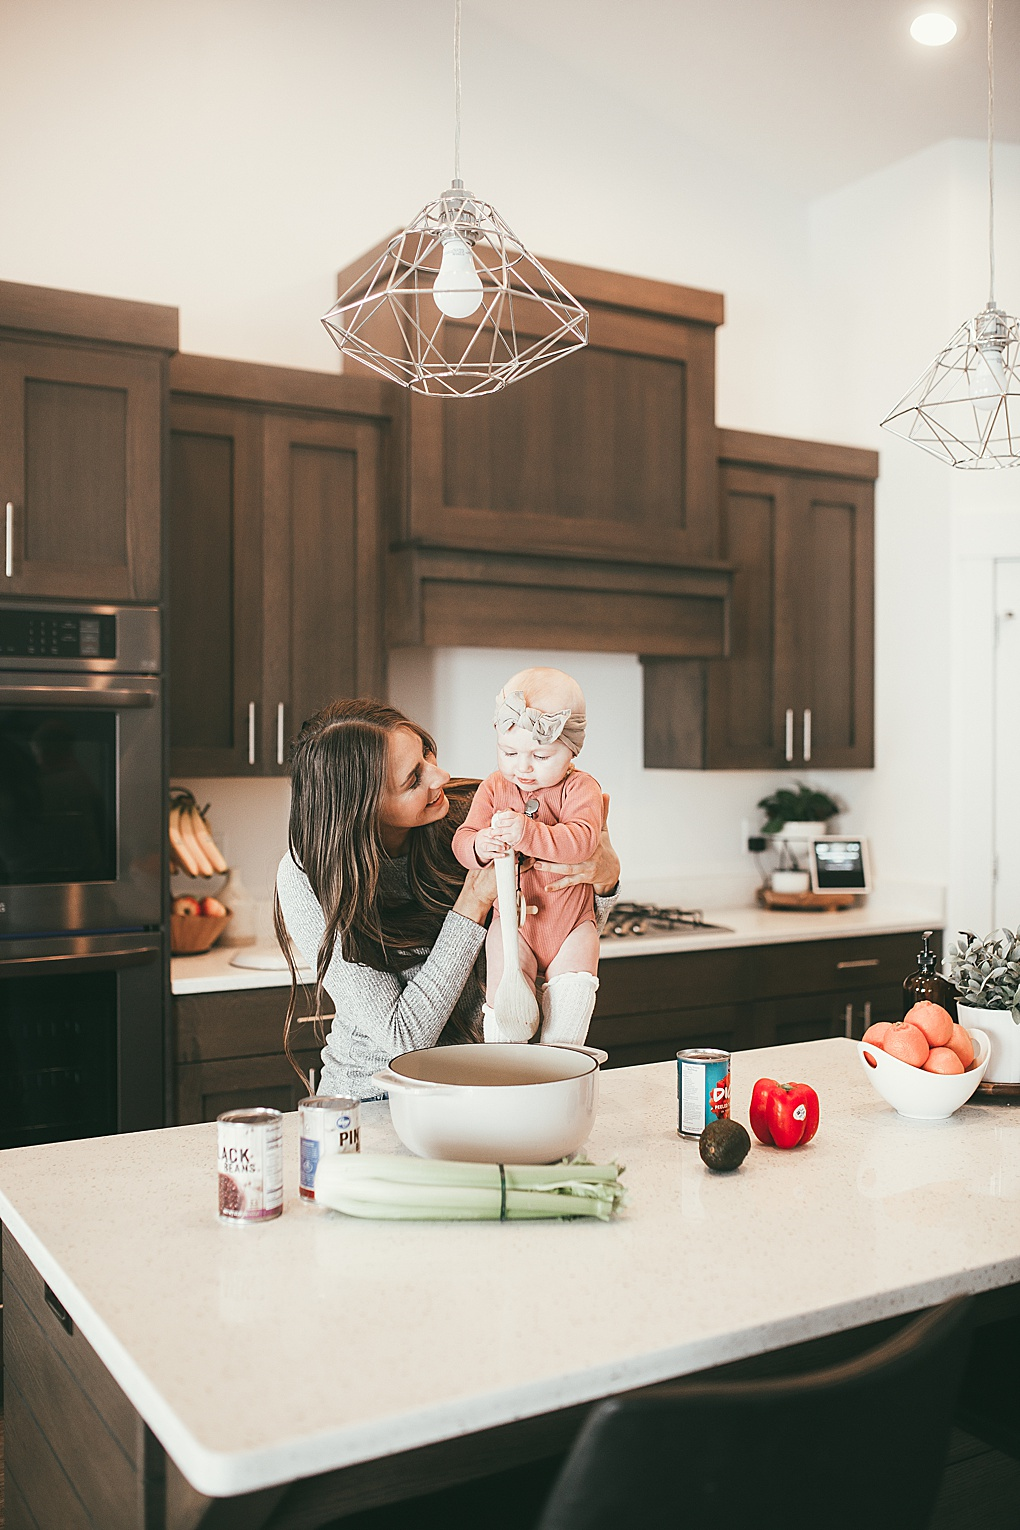 These quick and easy dinner recipes taste great and are perfect to keep on hand for busy nights. They are kid and budget friendly too! Utah Style Blogger Dani Marie is sharing her 3 go-to meals that she always as ingredients for. Click to see them here!